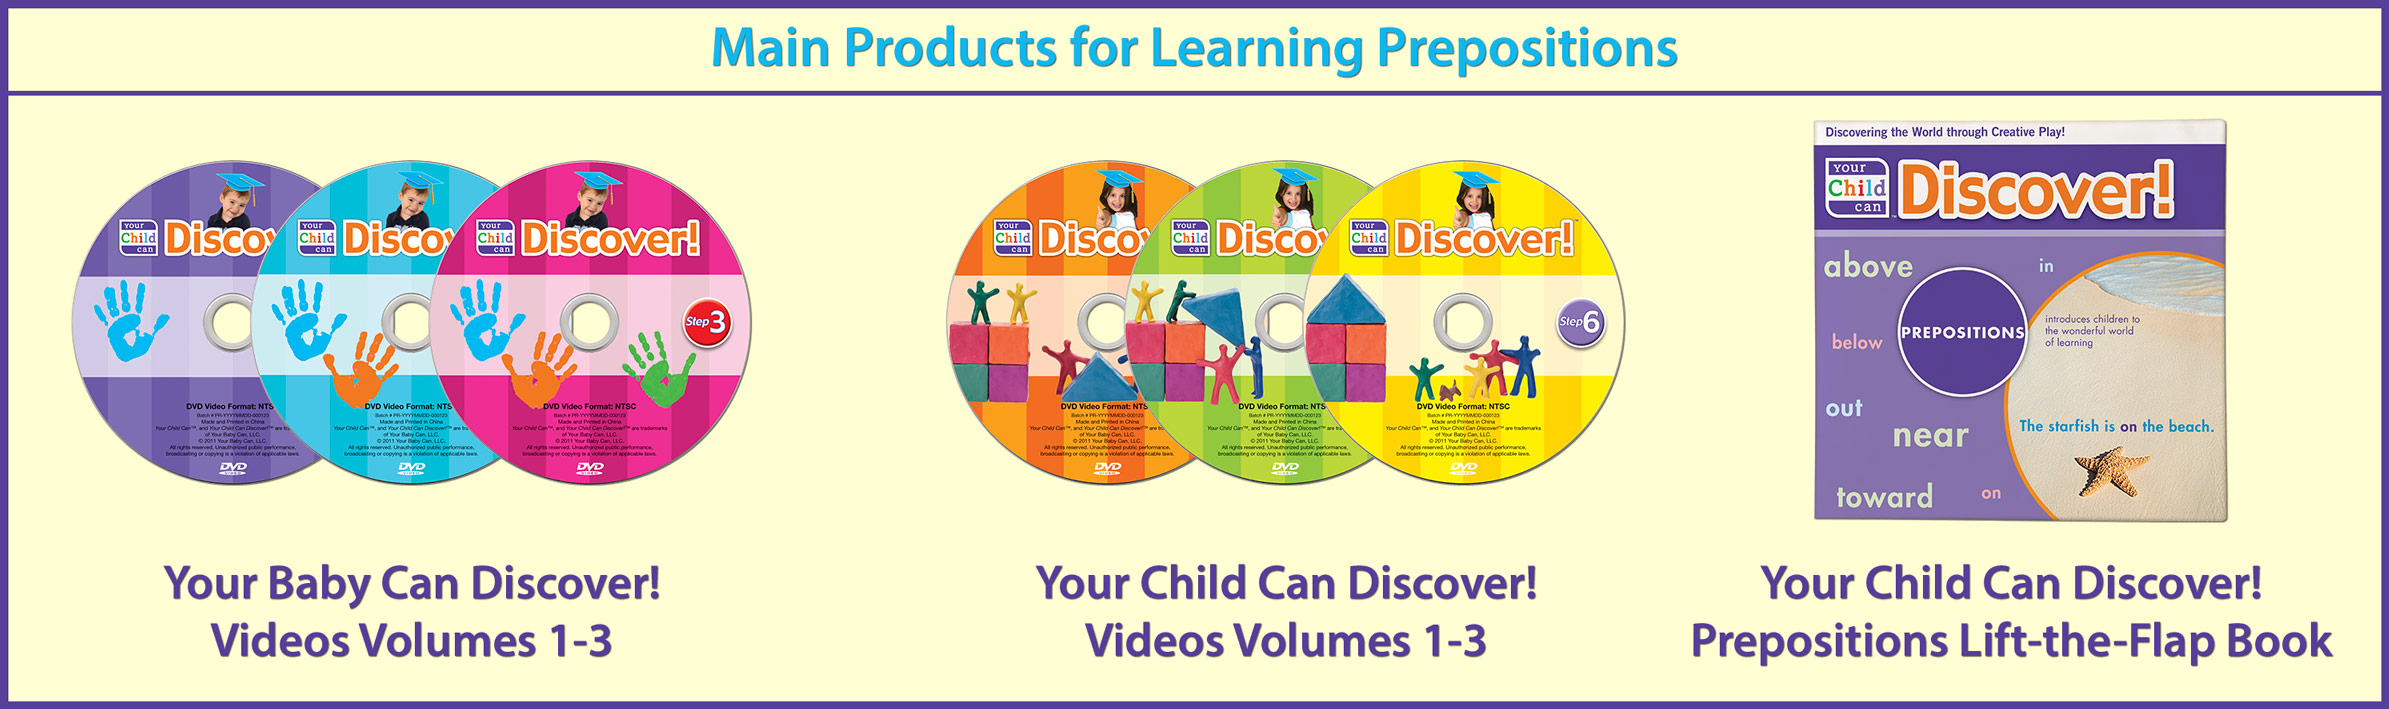 Main Products for Learning Prepositions